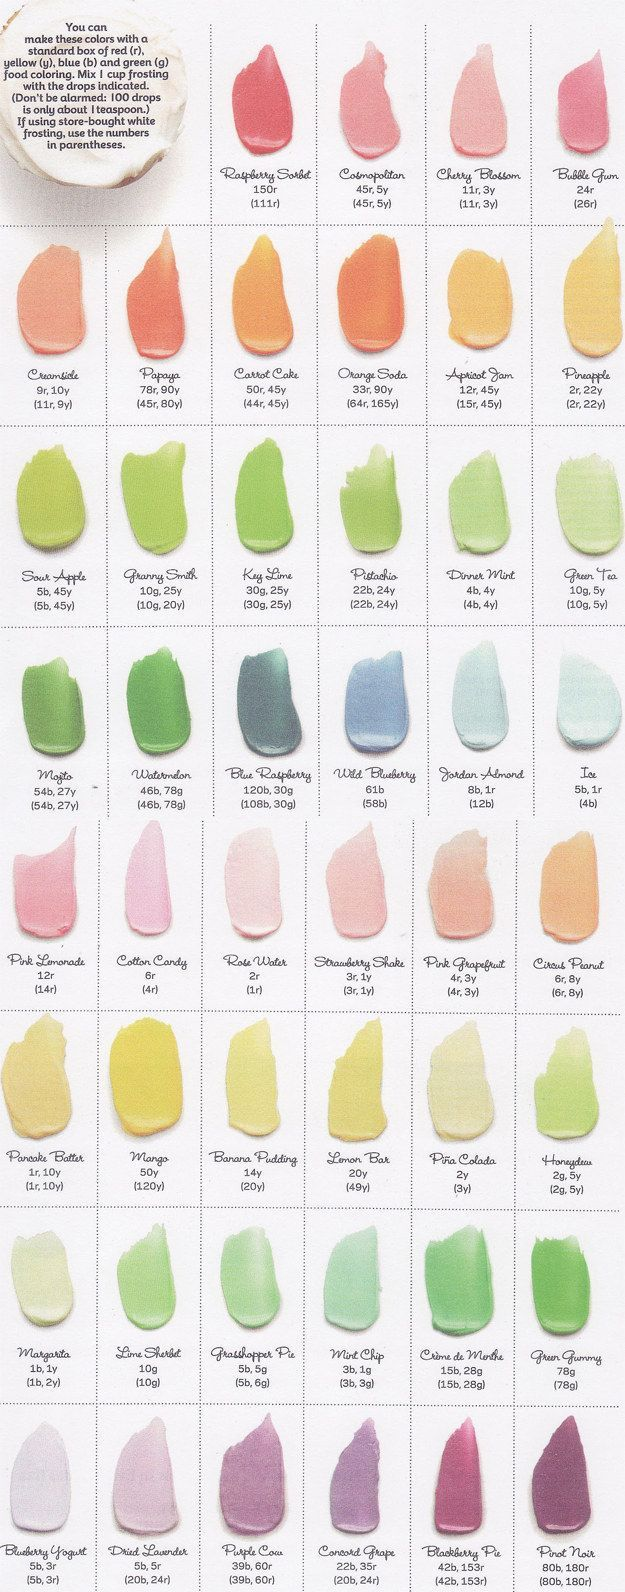 3 Helpful food coloring guides and flavor guides plus 7 great frosting and fondant recipes. Must have chart for every kitchen.